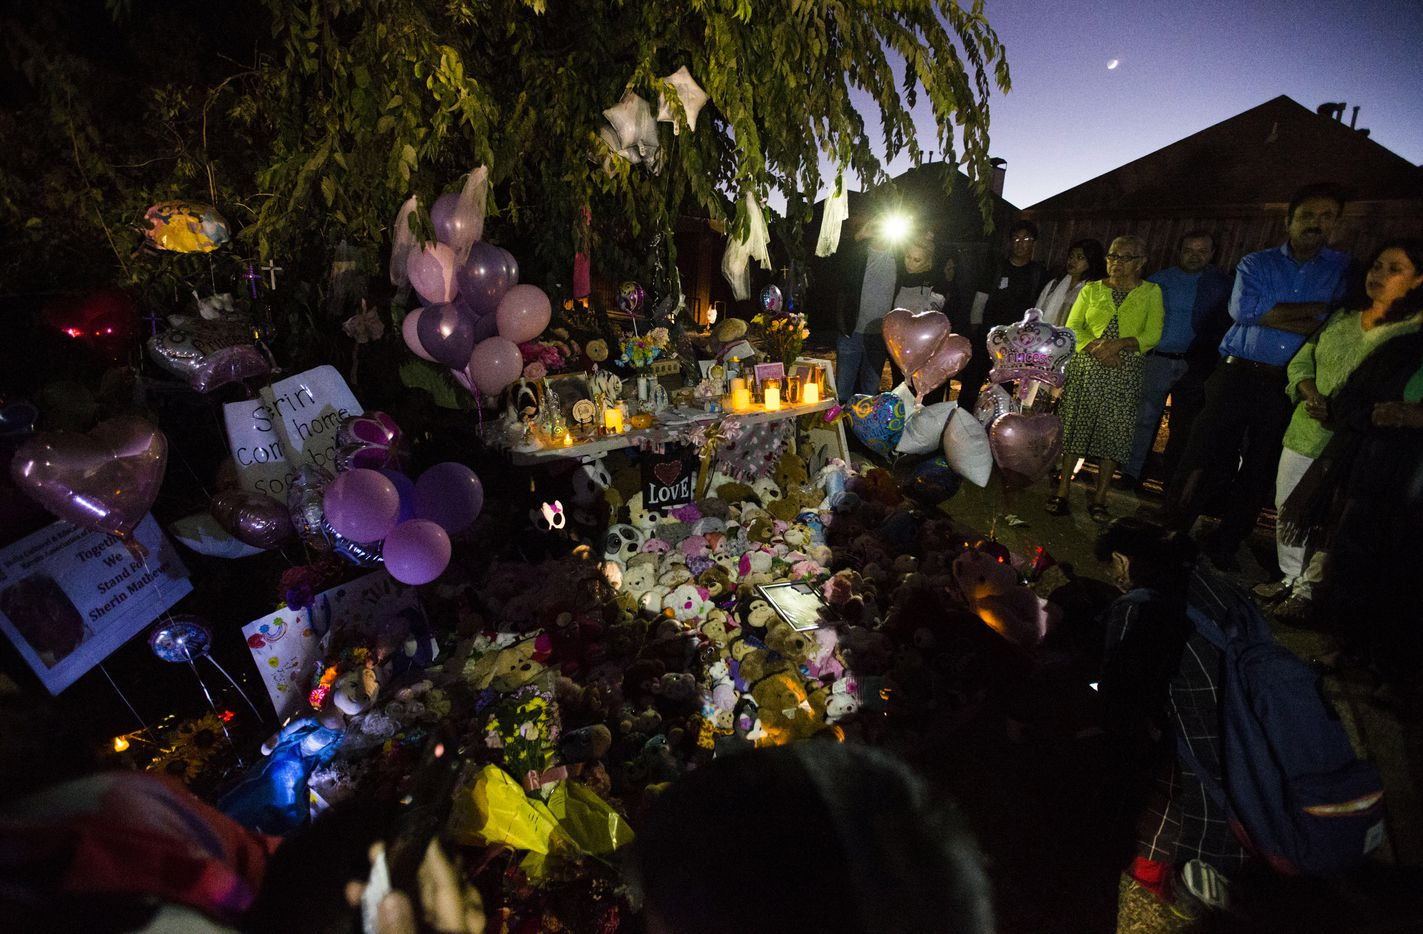 People gather at a memorial for missing 3-year-old Sherin Mathews on Sunday at a tree behind her home in Richardson.